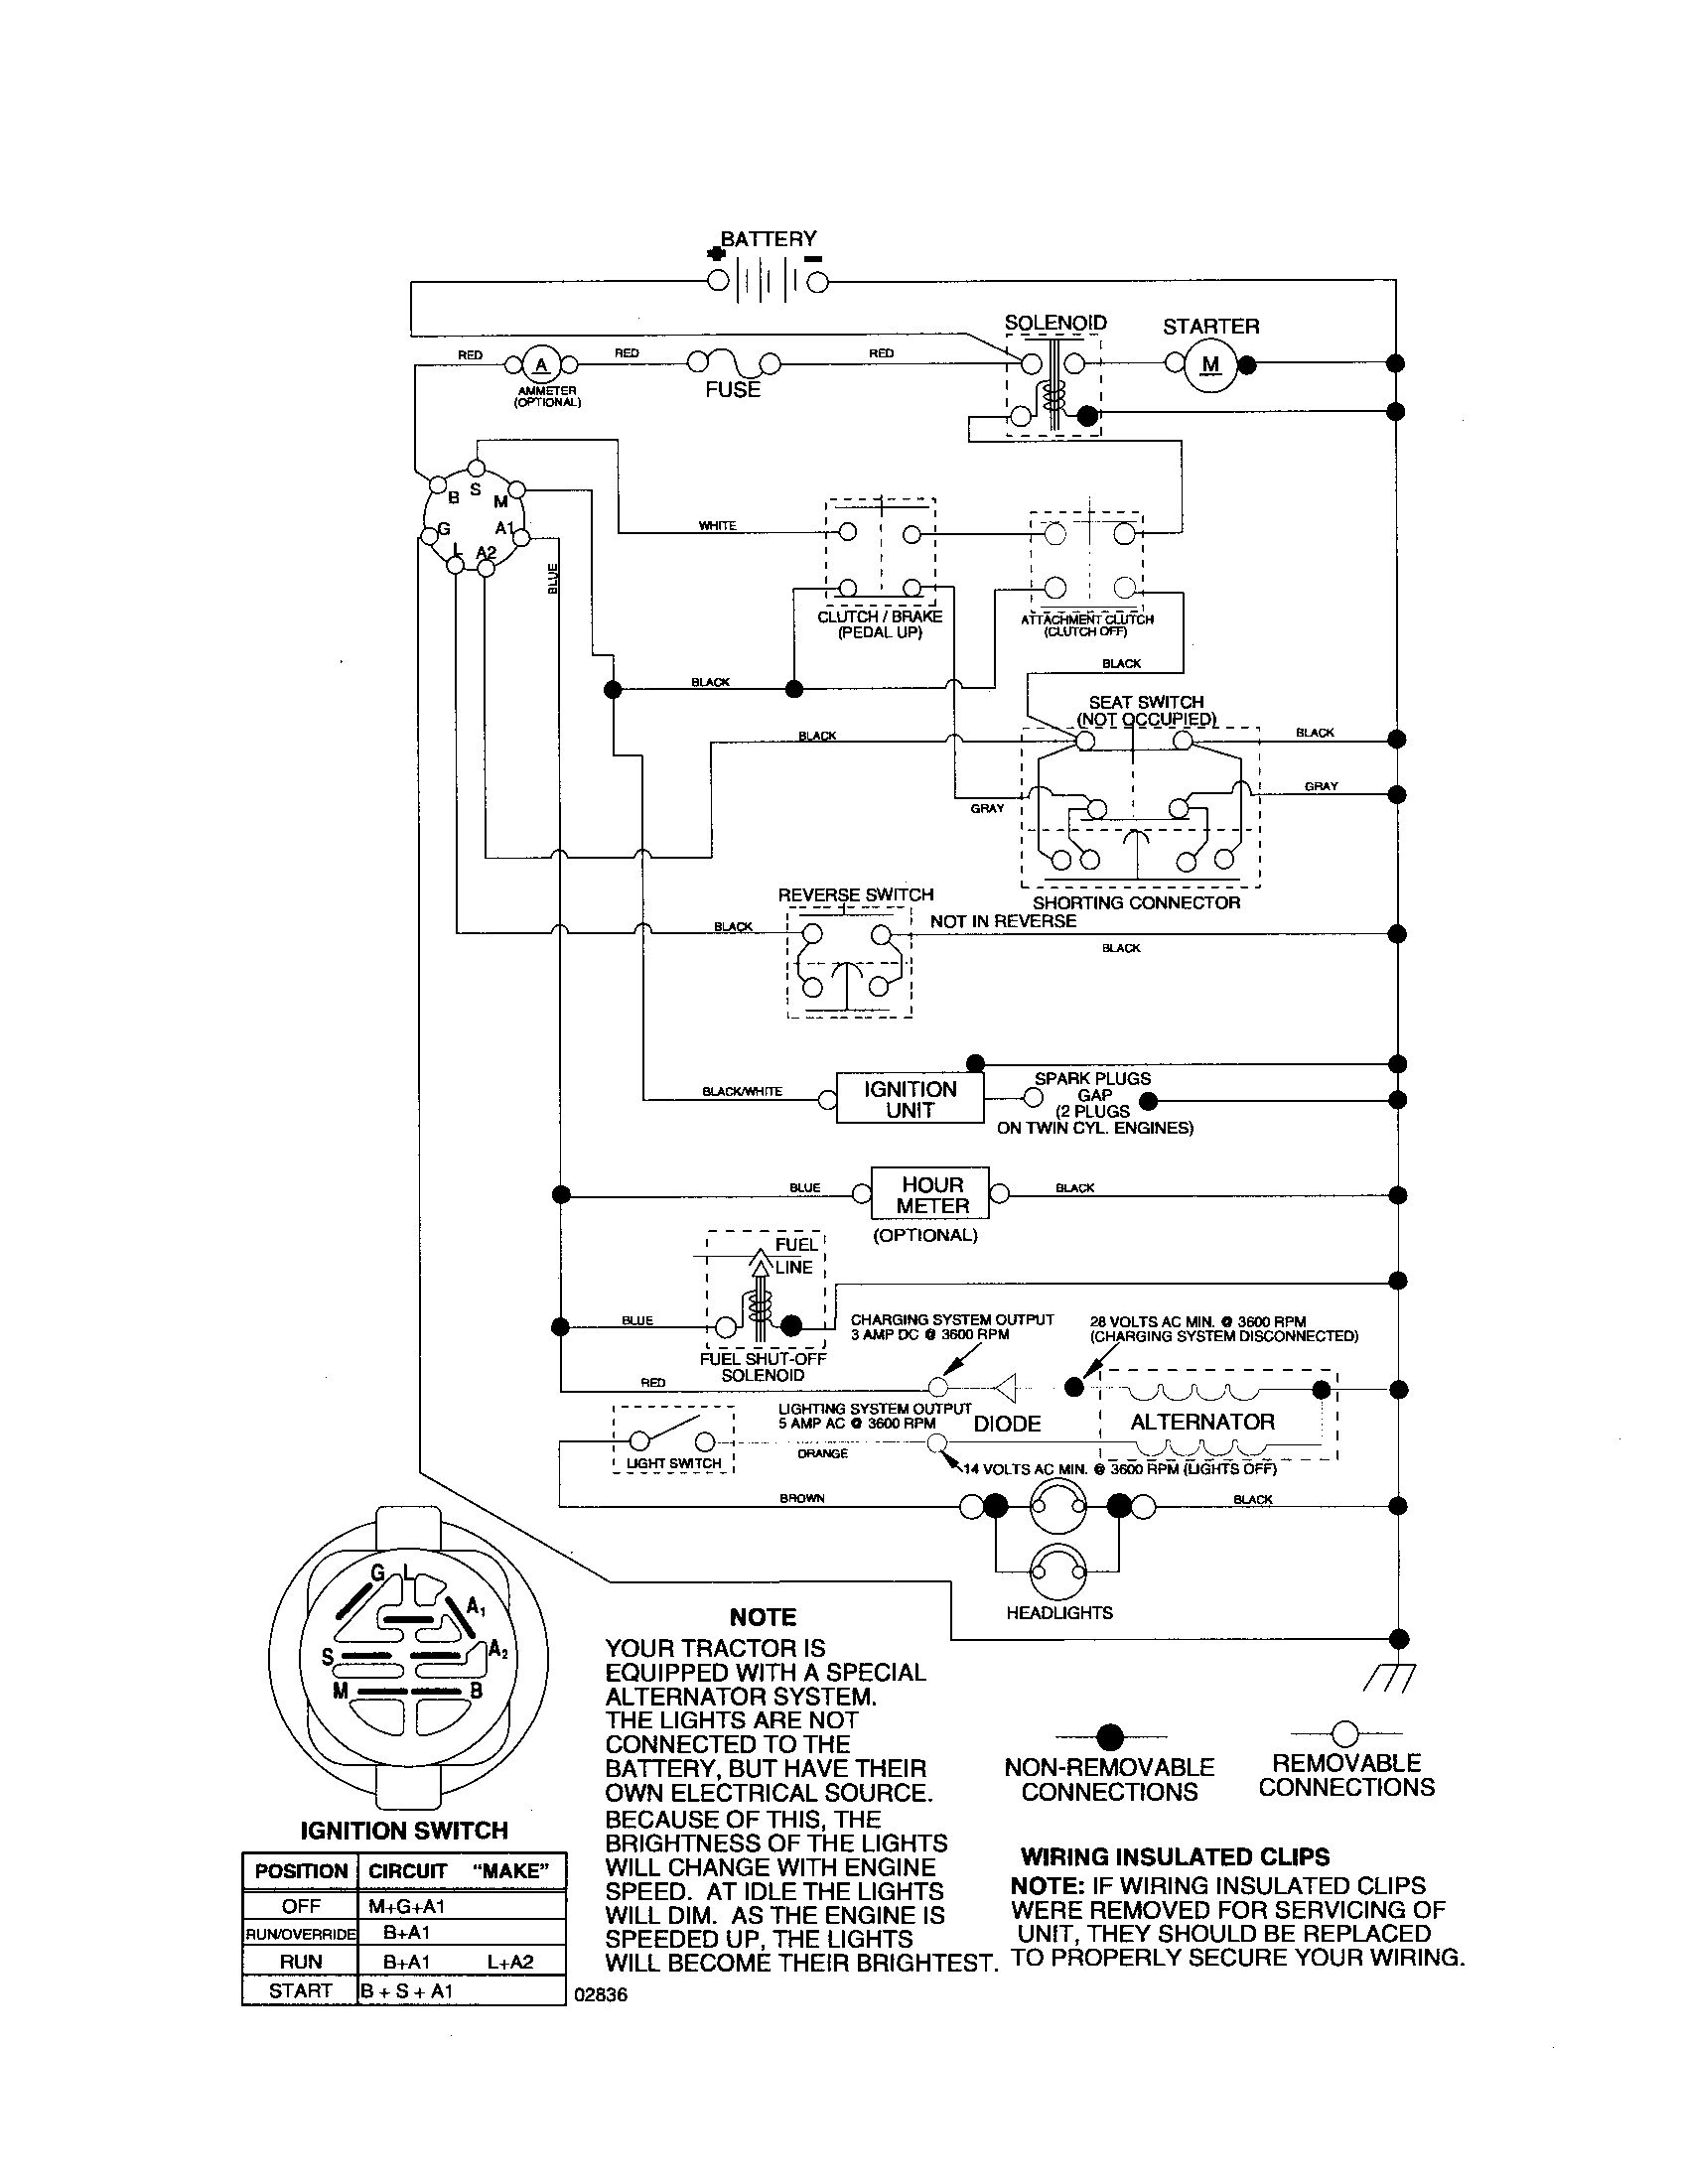 Southern States  Tractor  Schematic